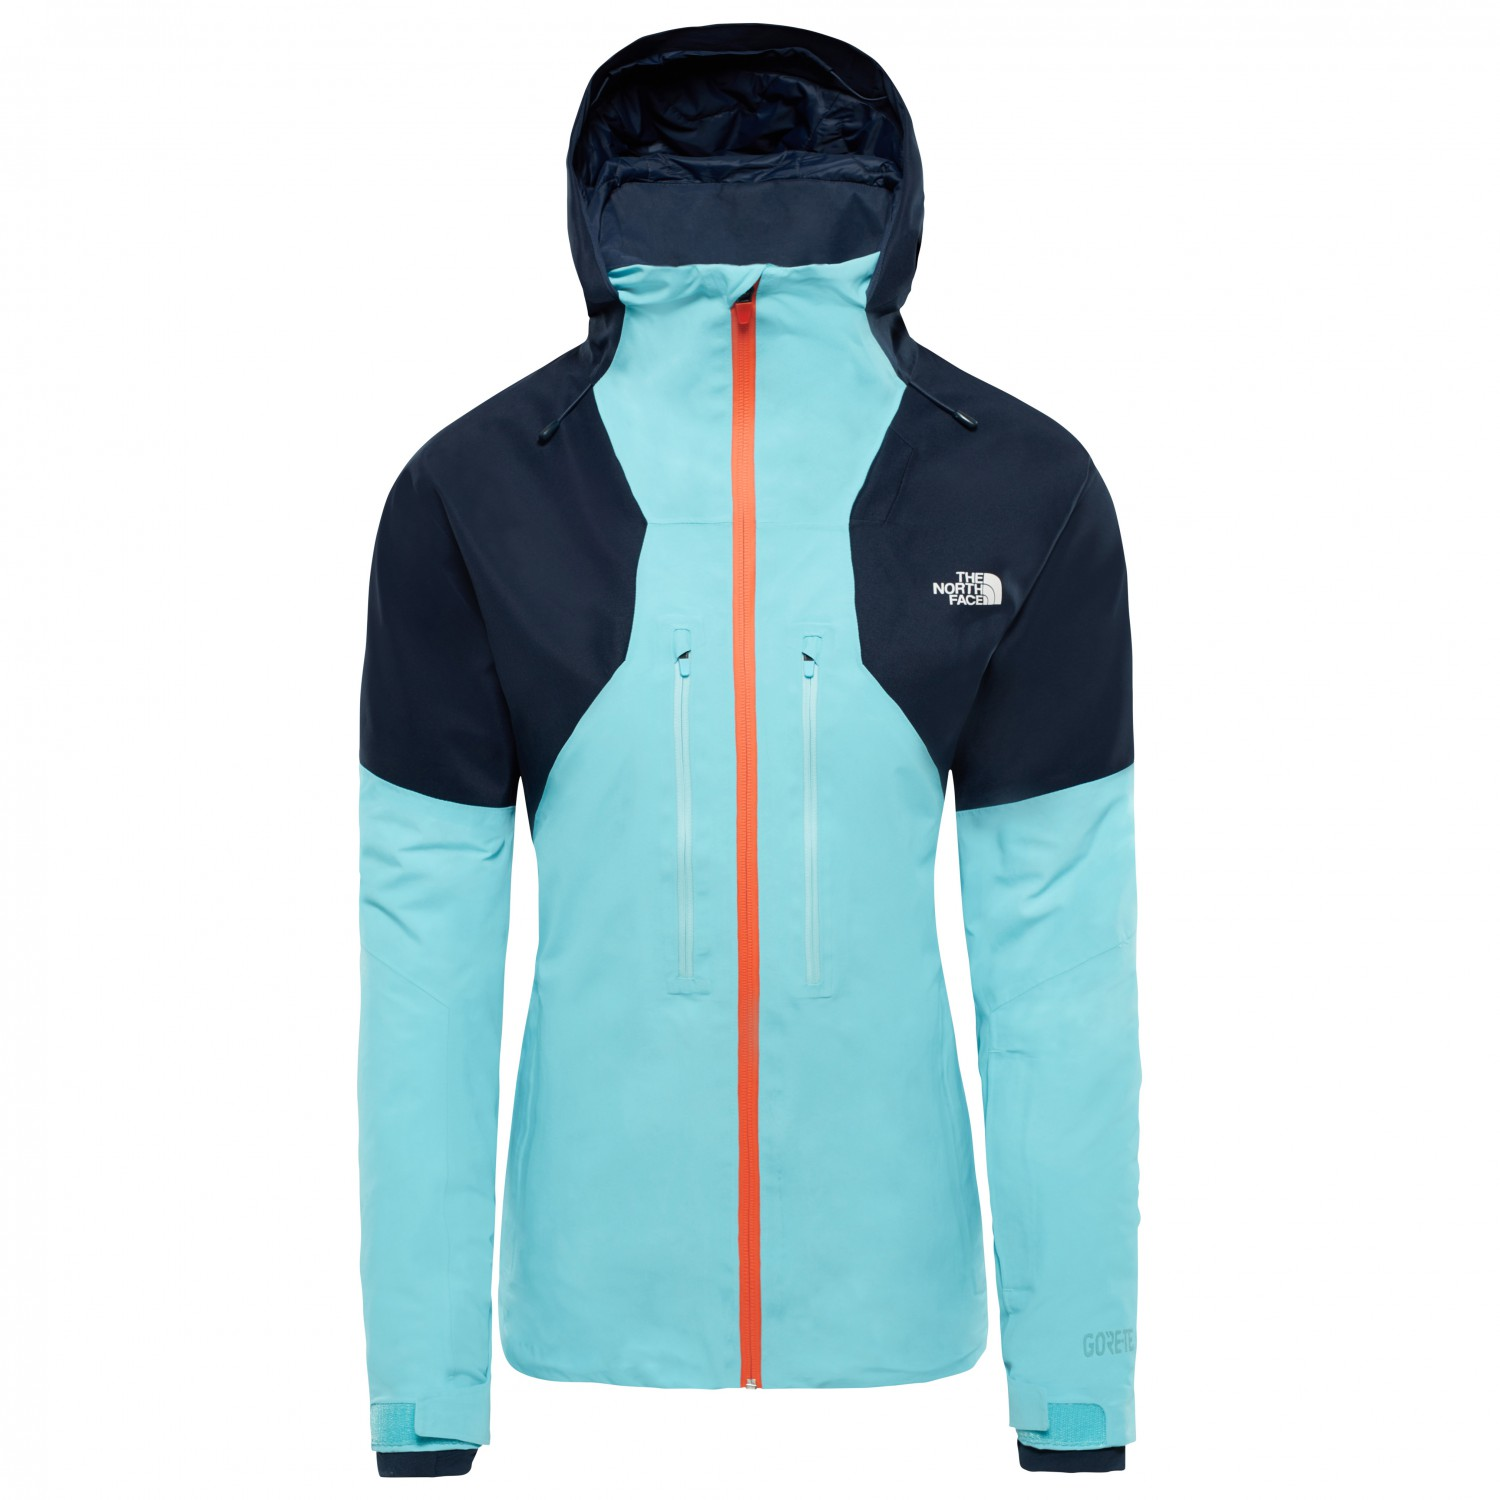 7825709f3 The North Face Powder Guide Jacket - Ski Jacket Women's | Buy online ...